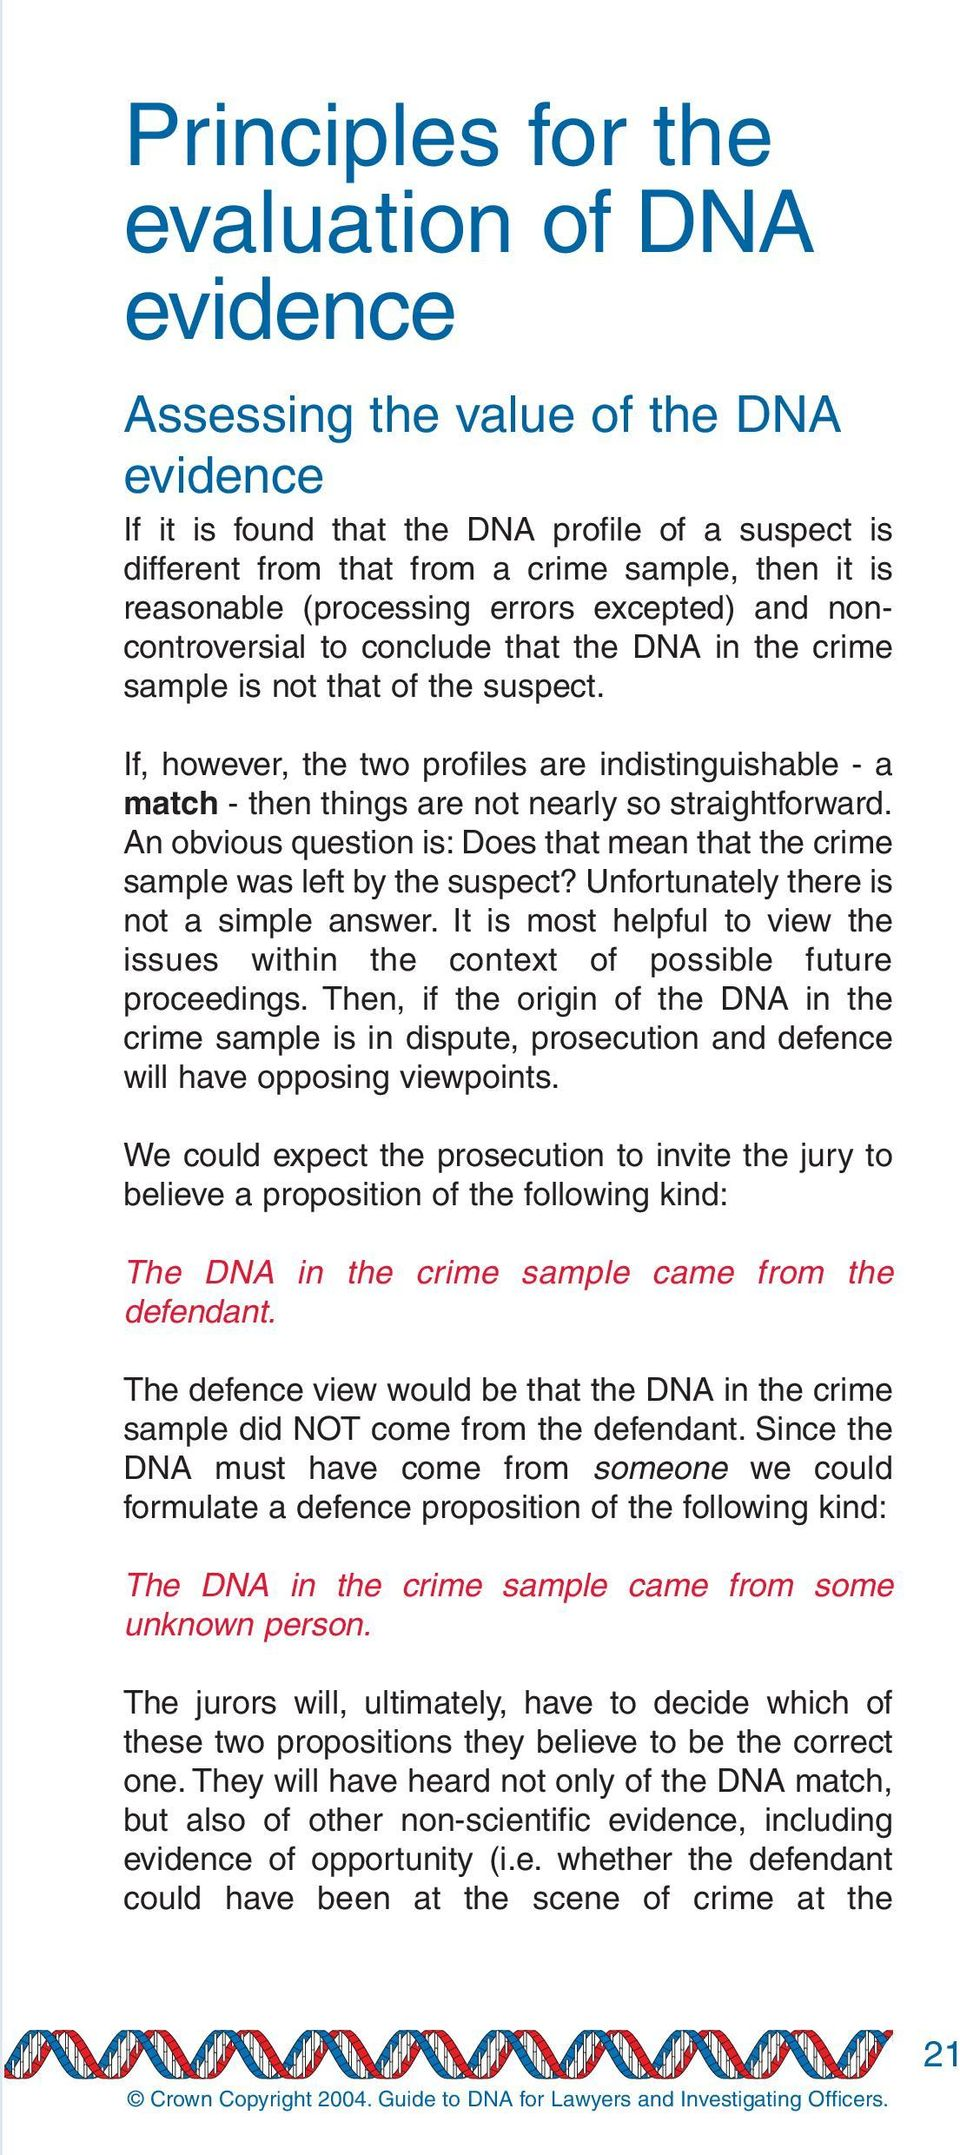 If, however, the two profiles are indistinguishable - a match - then things are not nearly so straightforward. An obvious question is: Does that mean that the crime sample was left by the suspect?